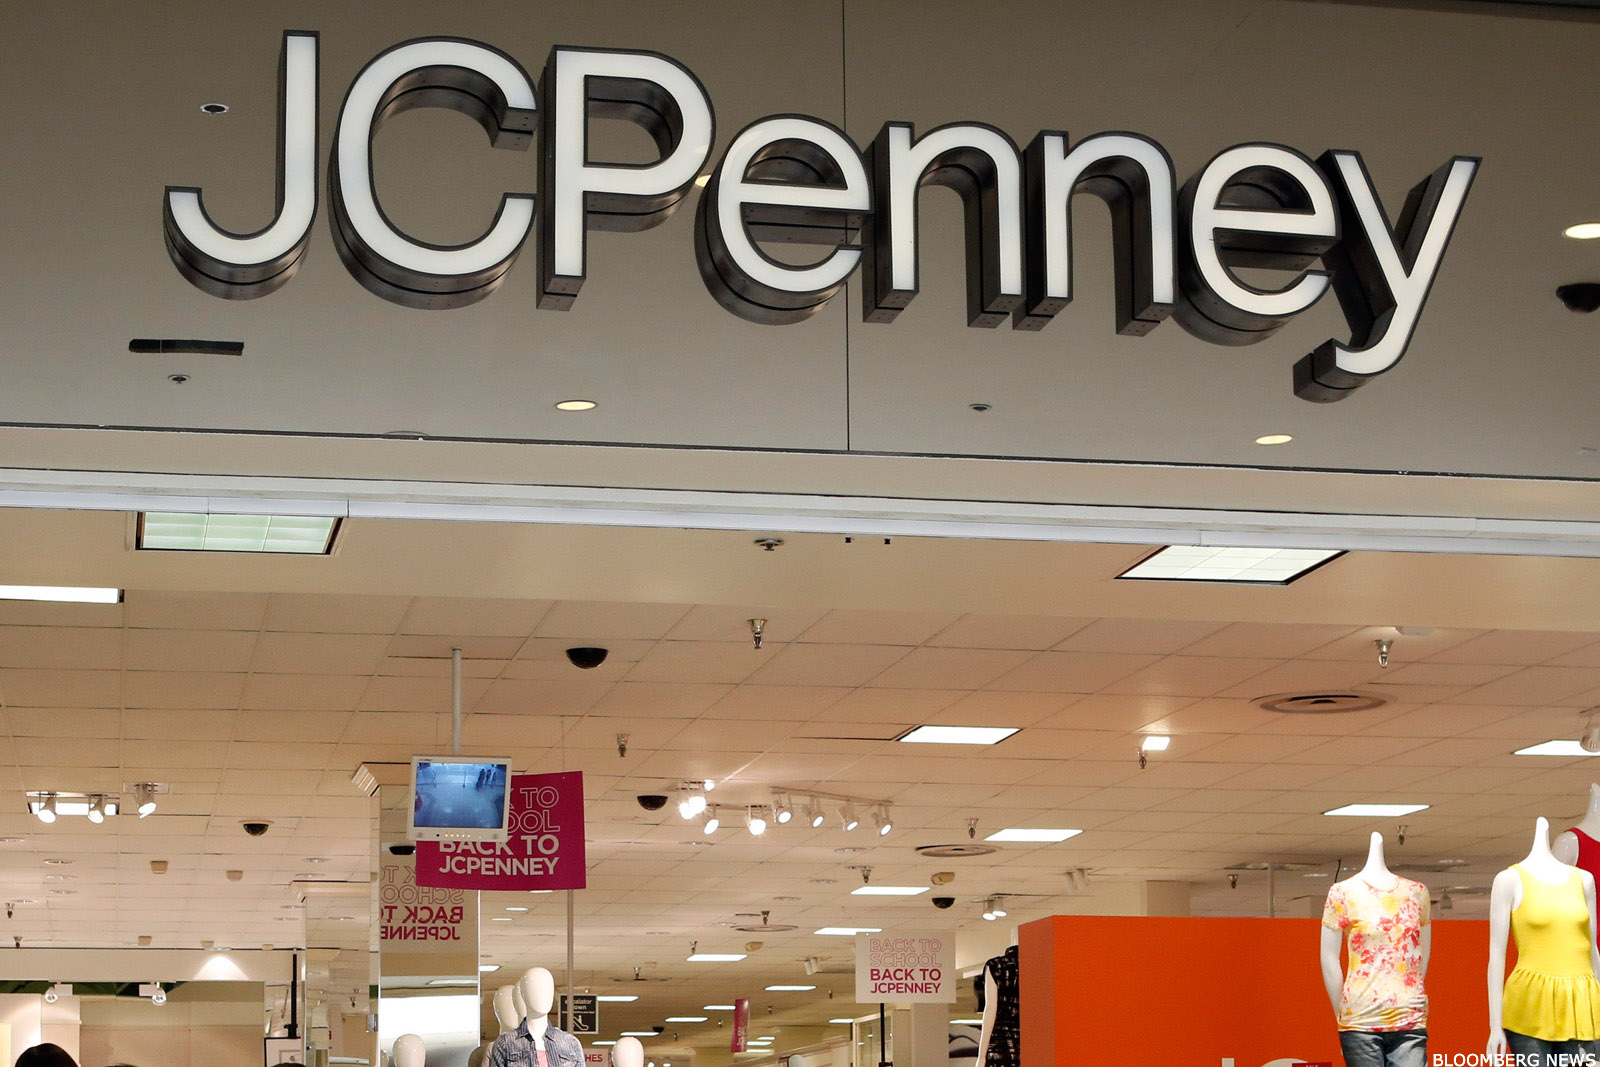 Jc penney stock options